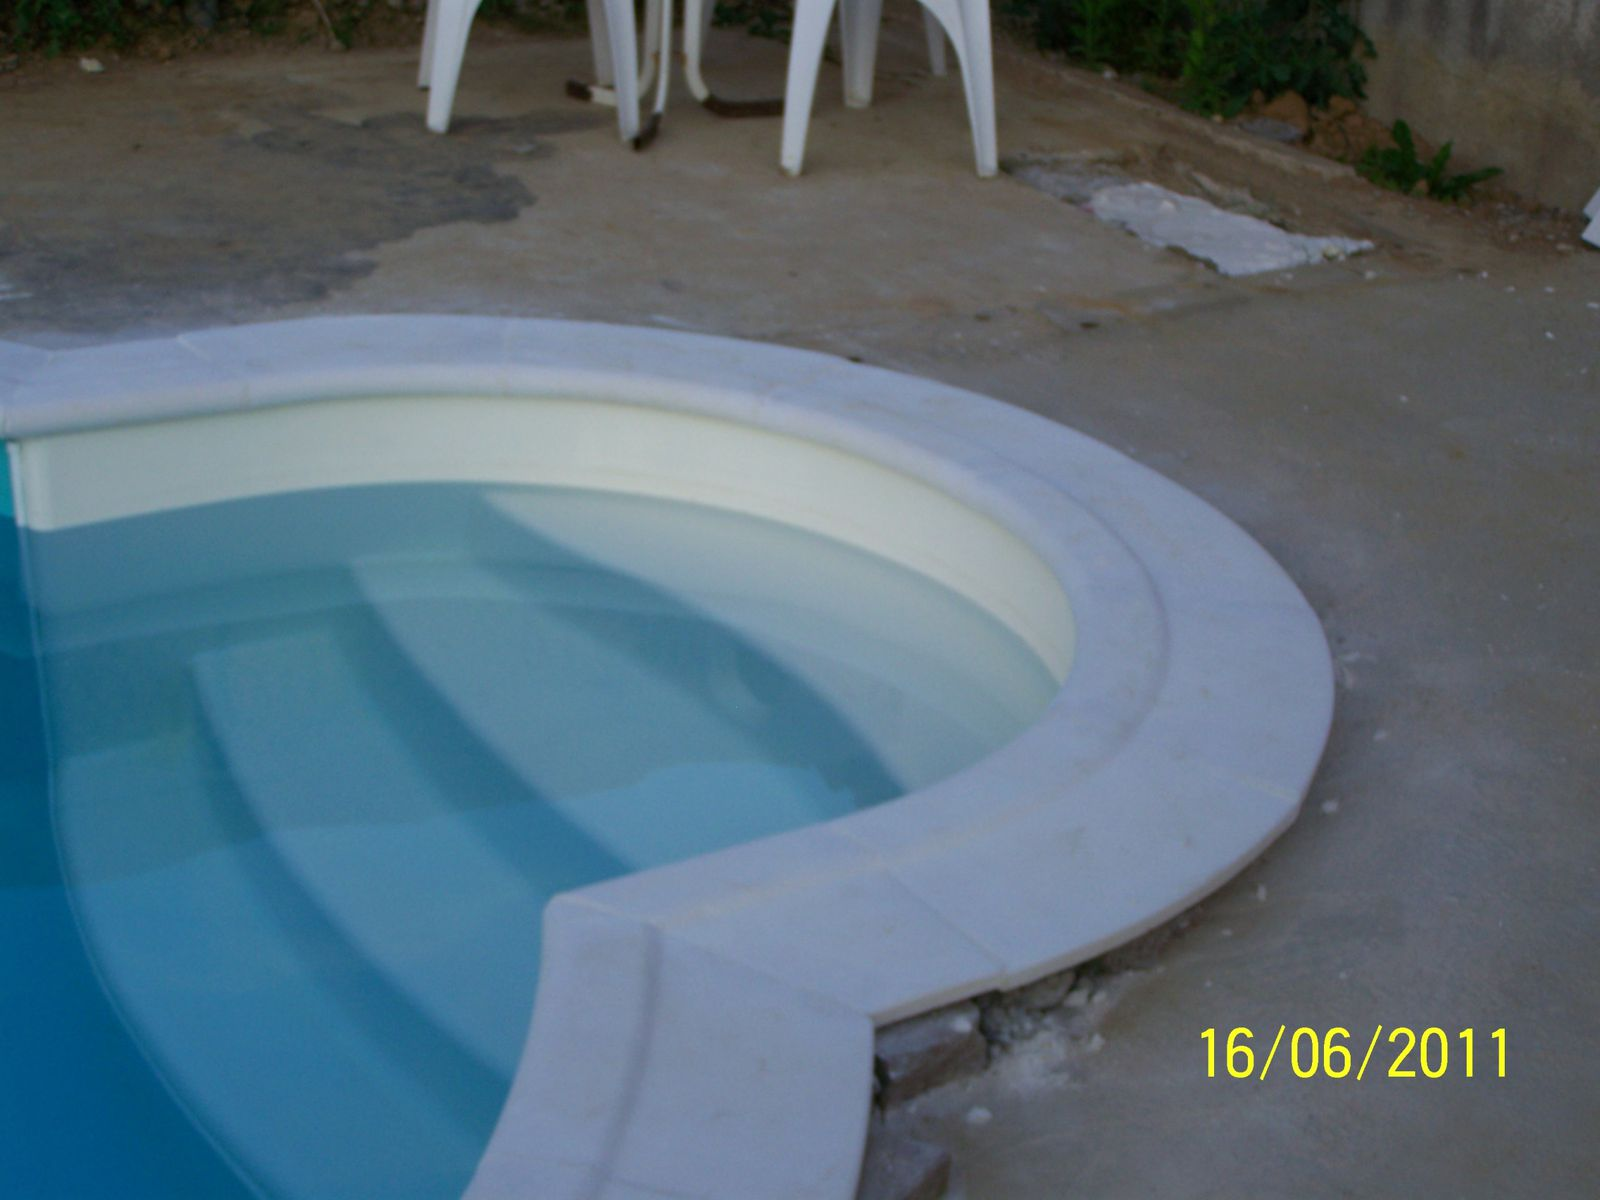 Joints des margelles montage piscine waterair - Margelle piscine waterair ...